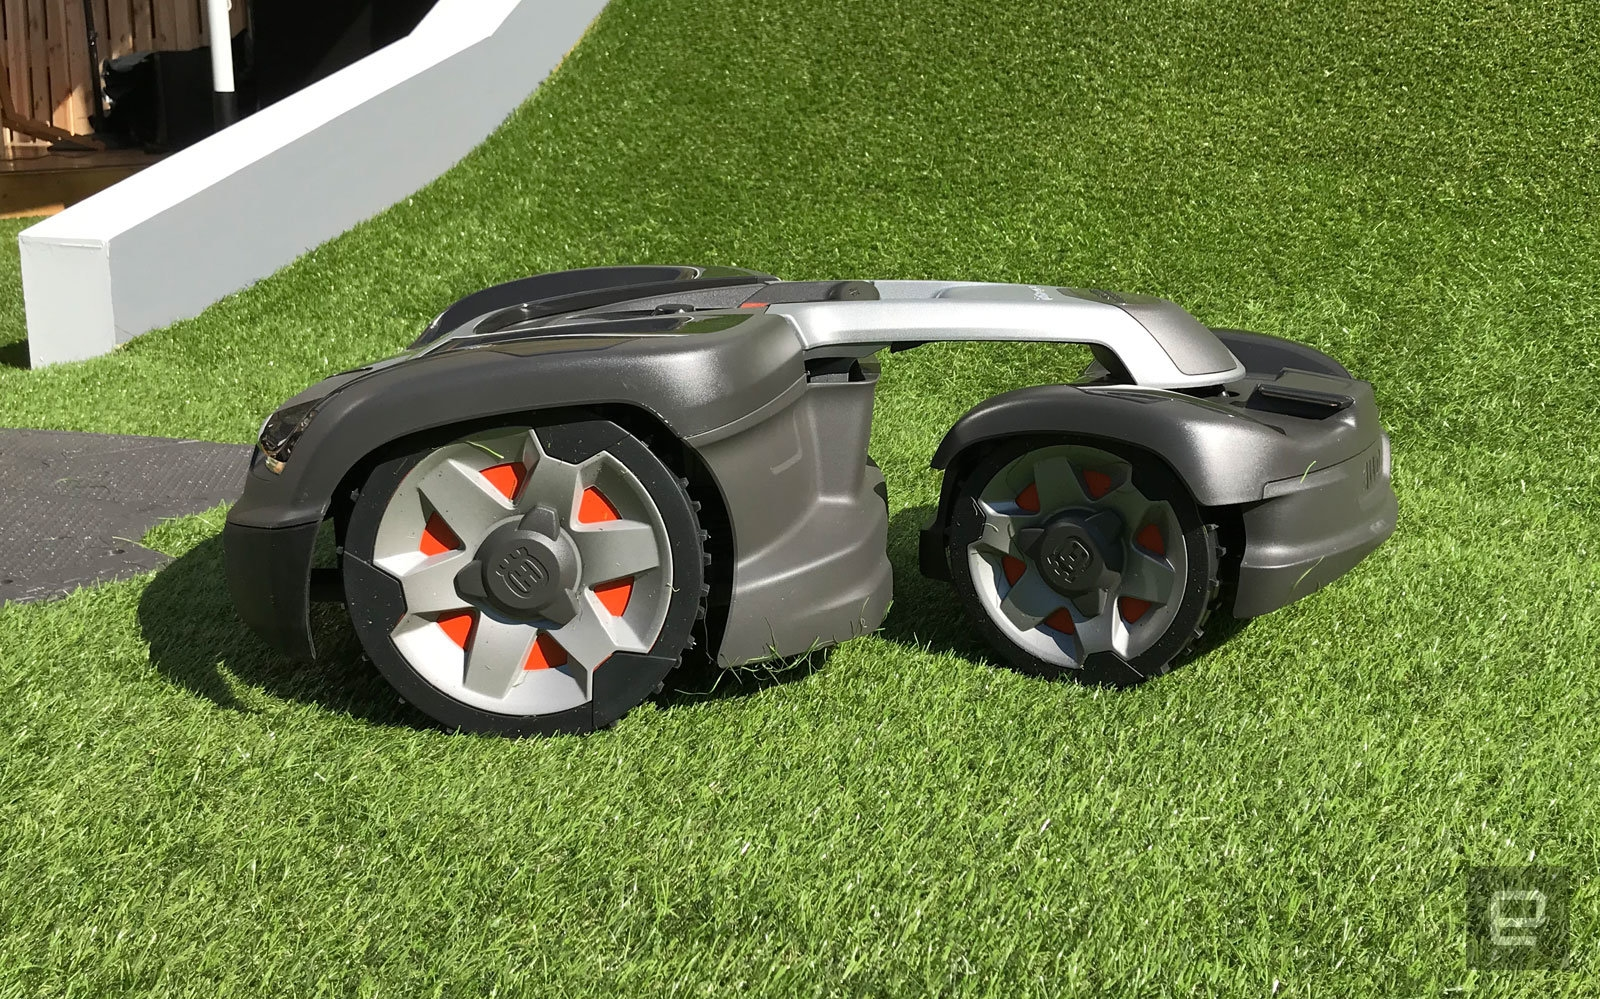 Hills can't stop this all-wheel-drive robot lawn mower   DeviceDaily.com